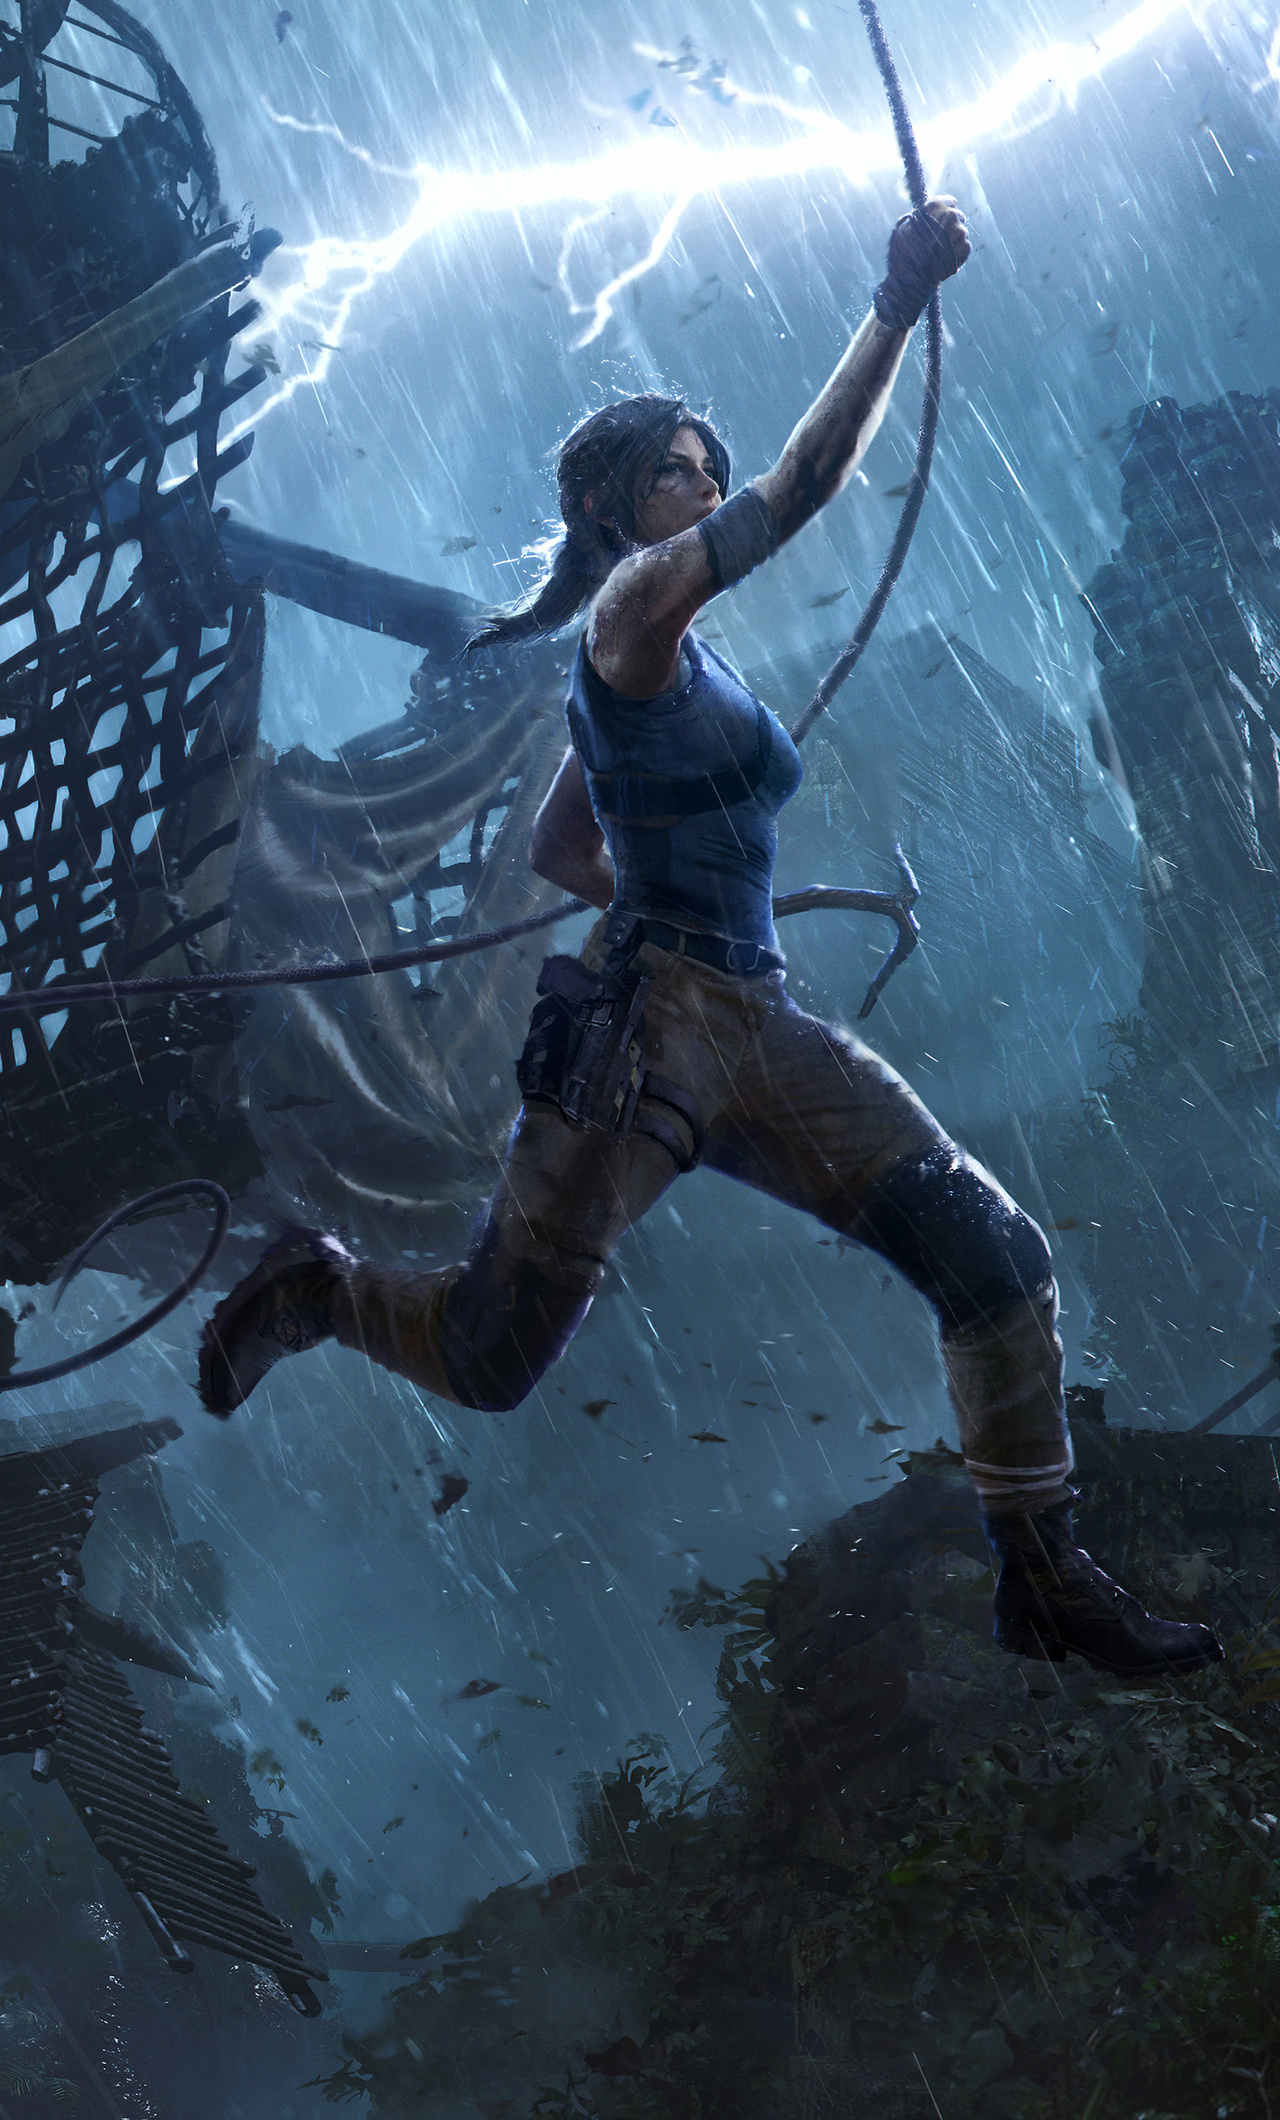 2018-lara-croft-shadow-of-the-tomb-raider-5c.jpg